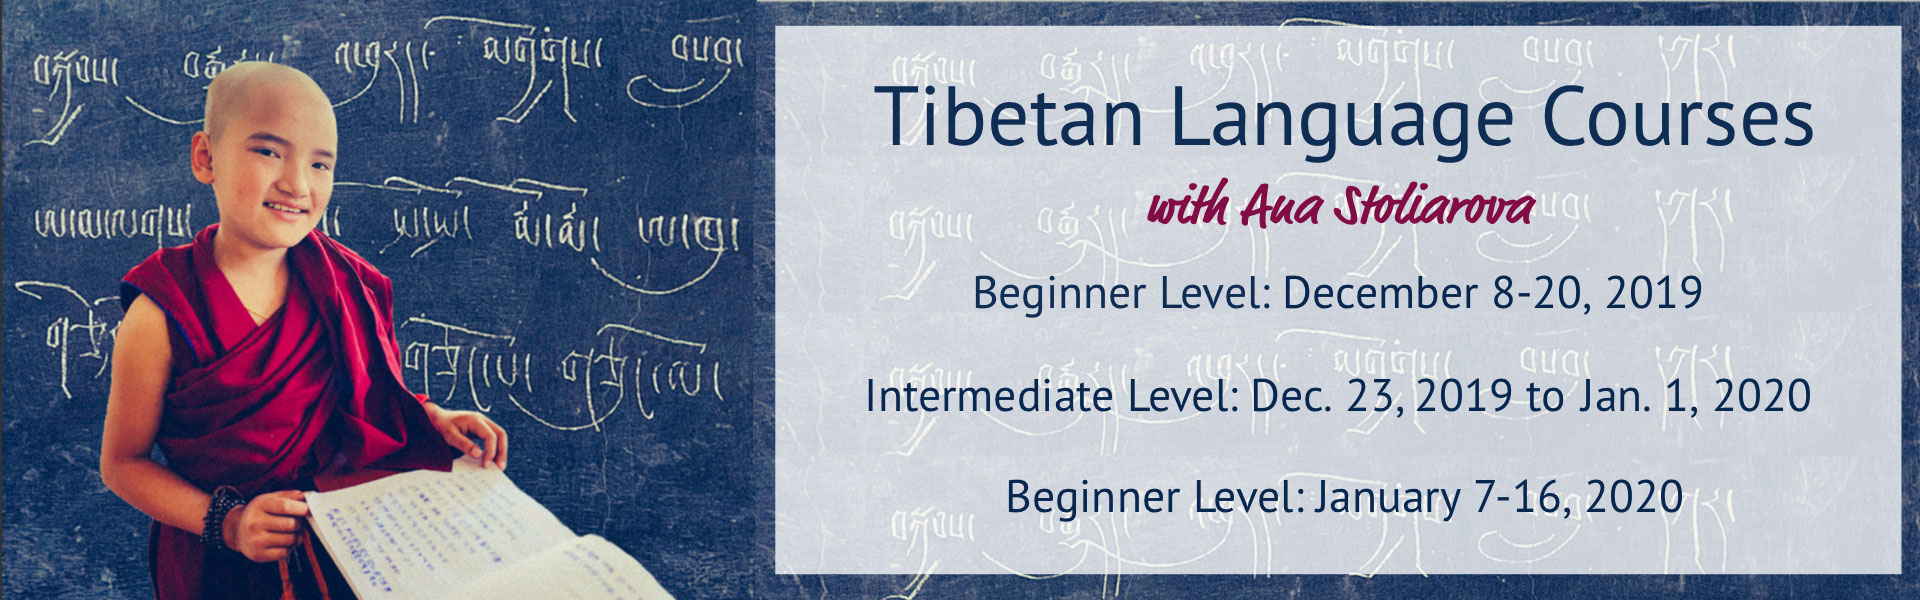 Tibetan Language Classes